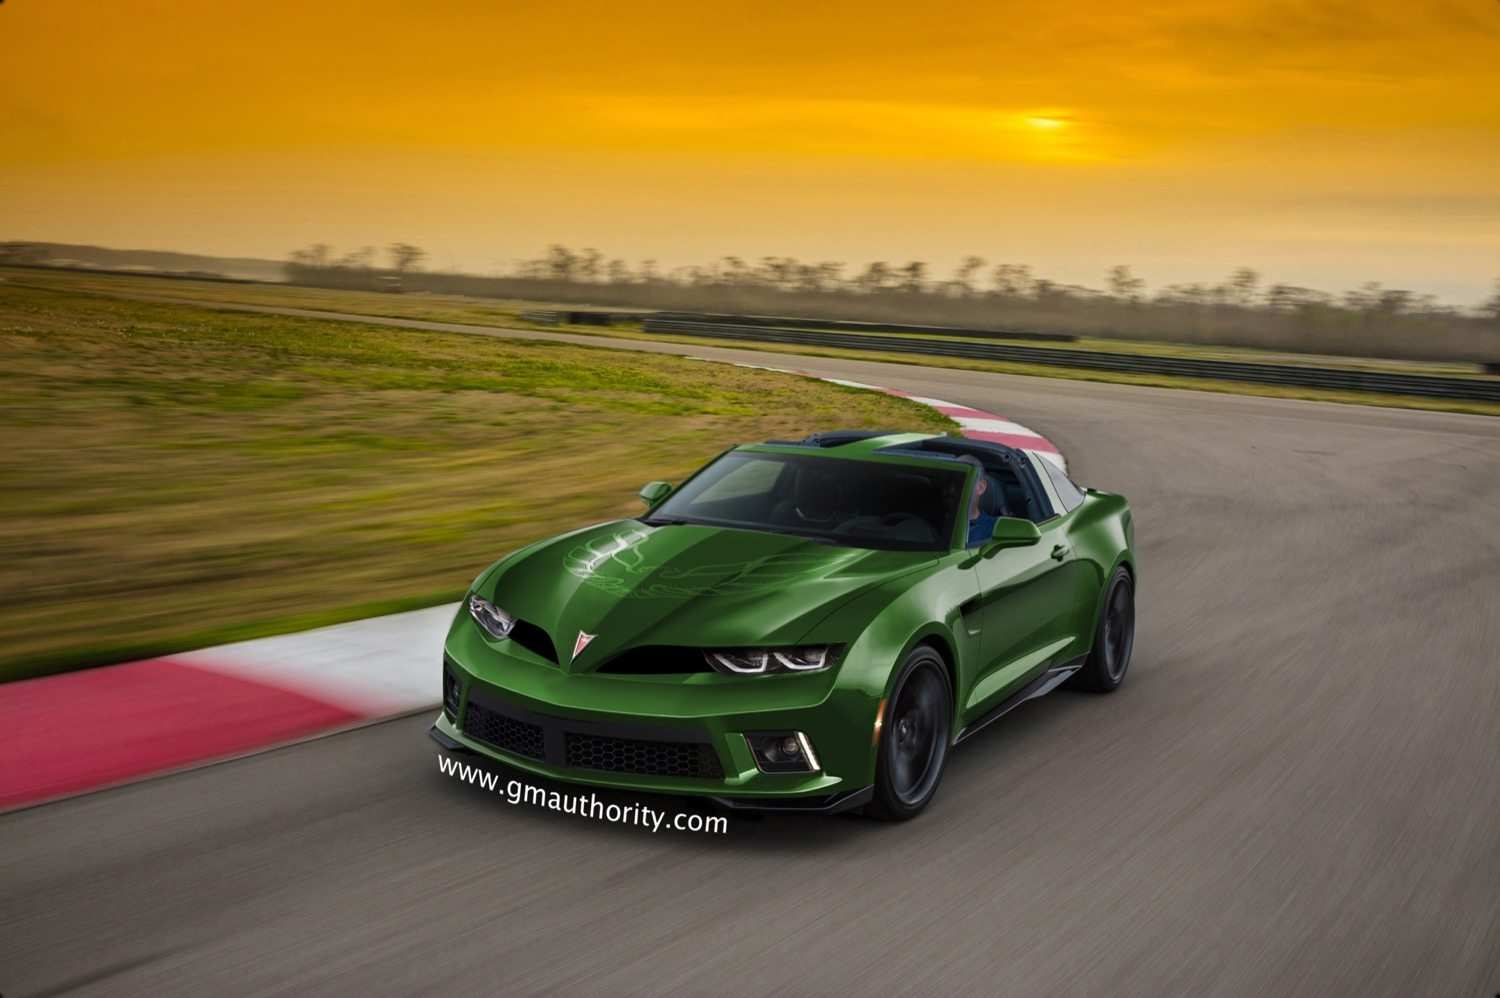 44 New Best 2019 Buick Firebird And Trans Am Specs And Review Configurations with Best 2019 Buick Firebird And Trans Am Specs And Review